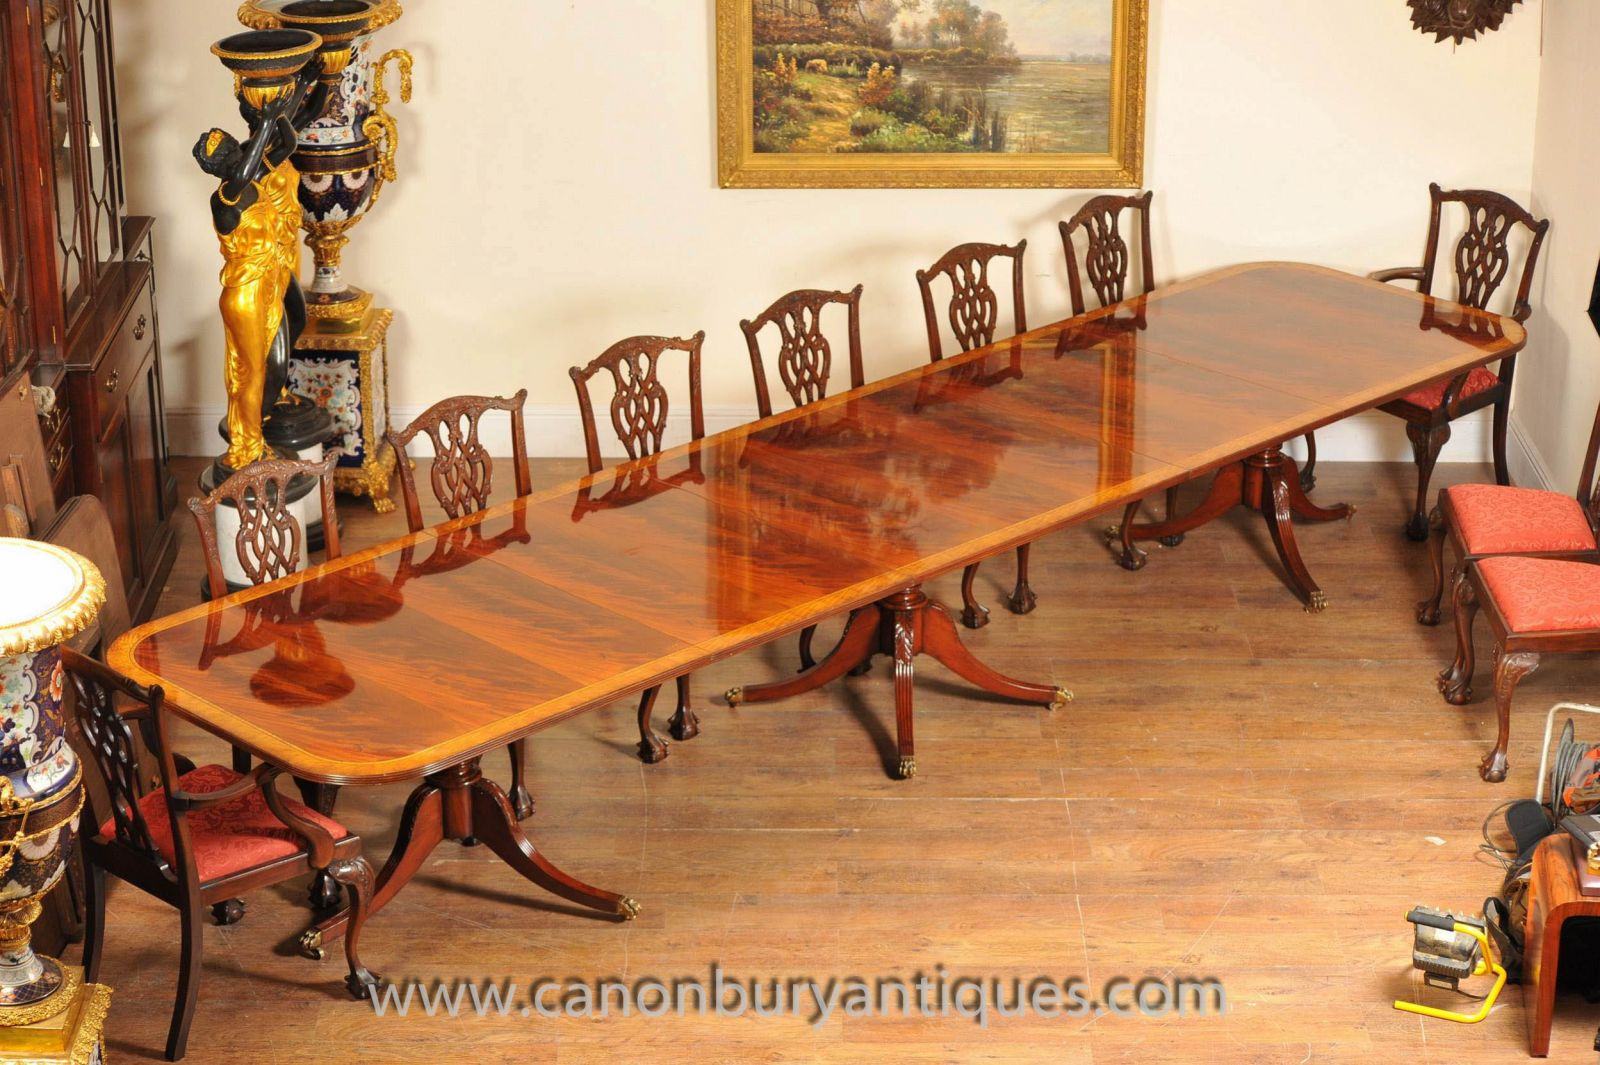 Regency Table and Set Chippendale Dining Chairs Set www_canonburyantiques_com (6)-2